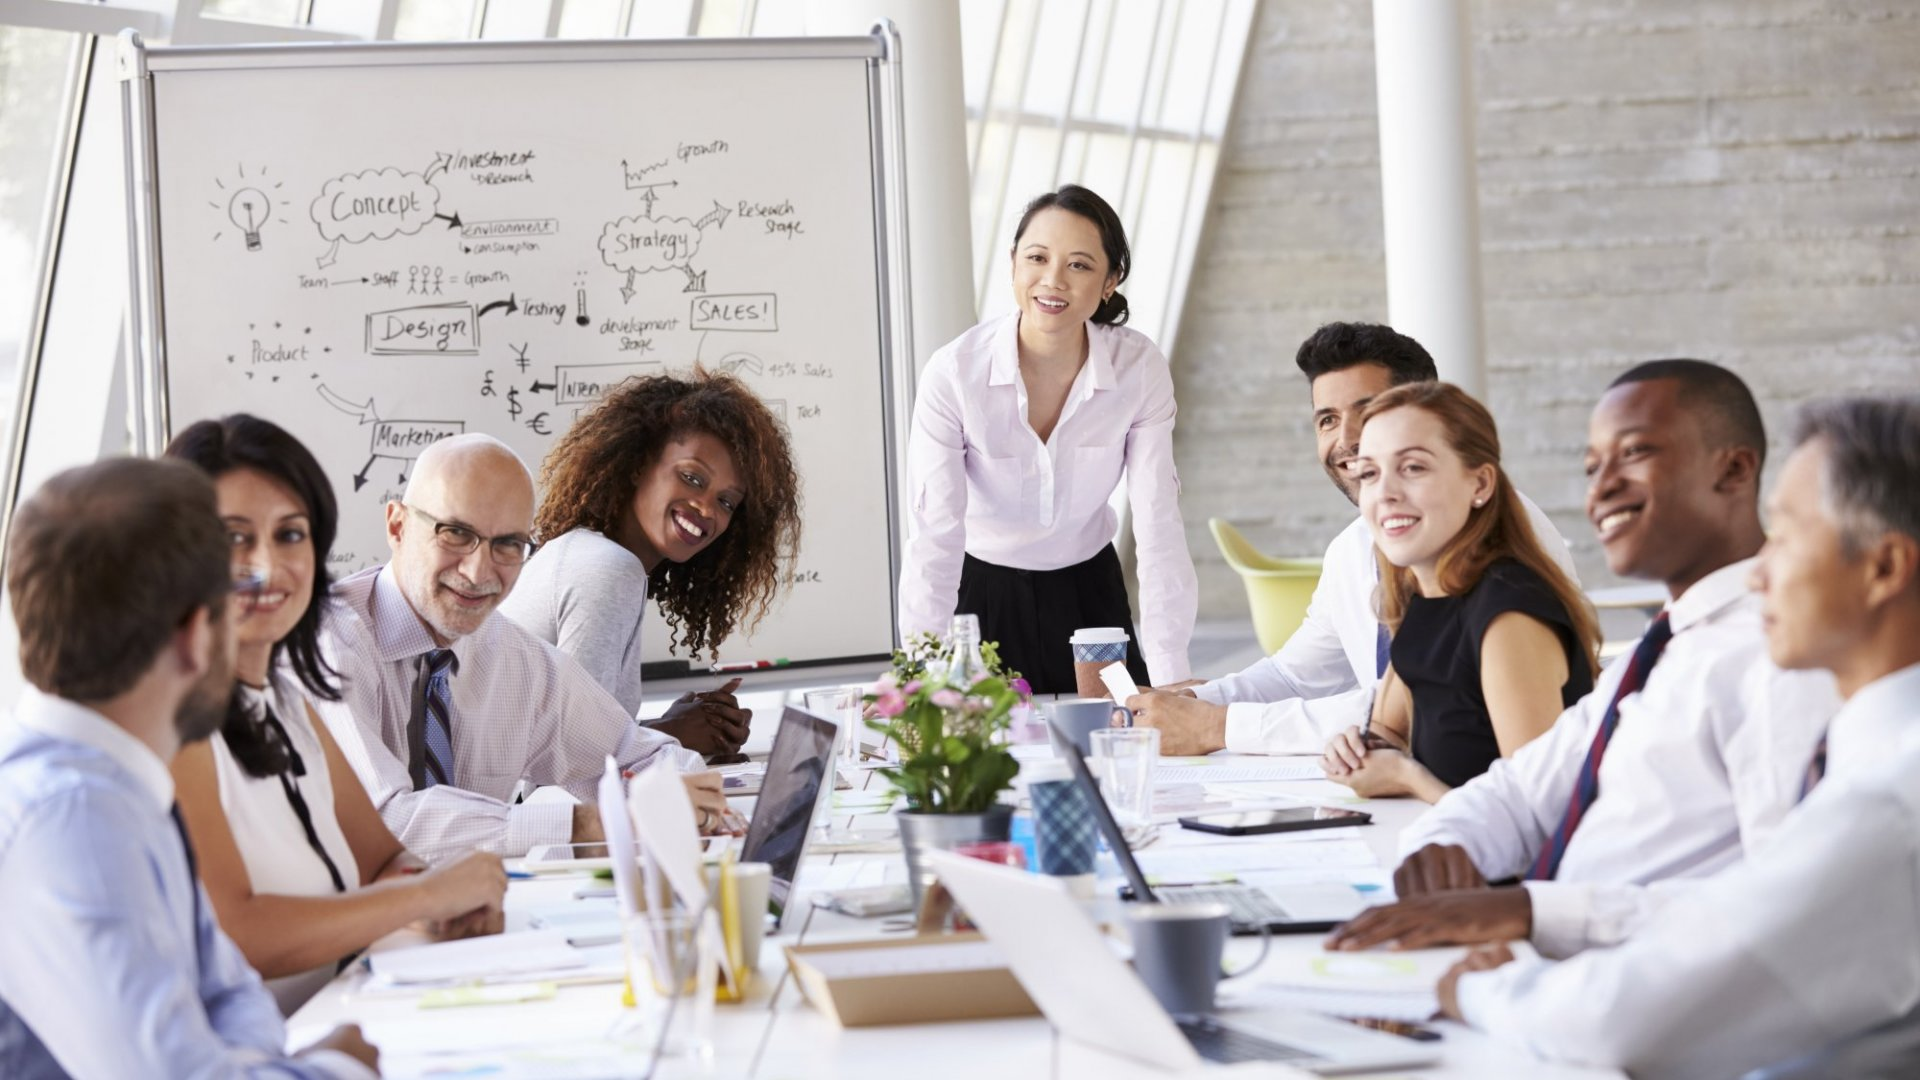 7 Tips for Attracting, Engaging, and Supporting Women in Your Workplace